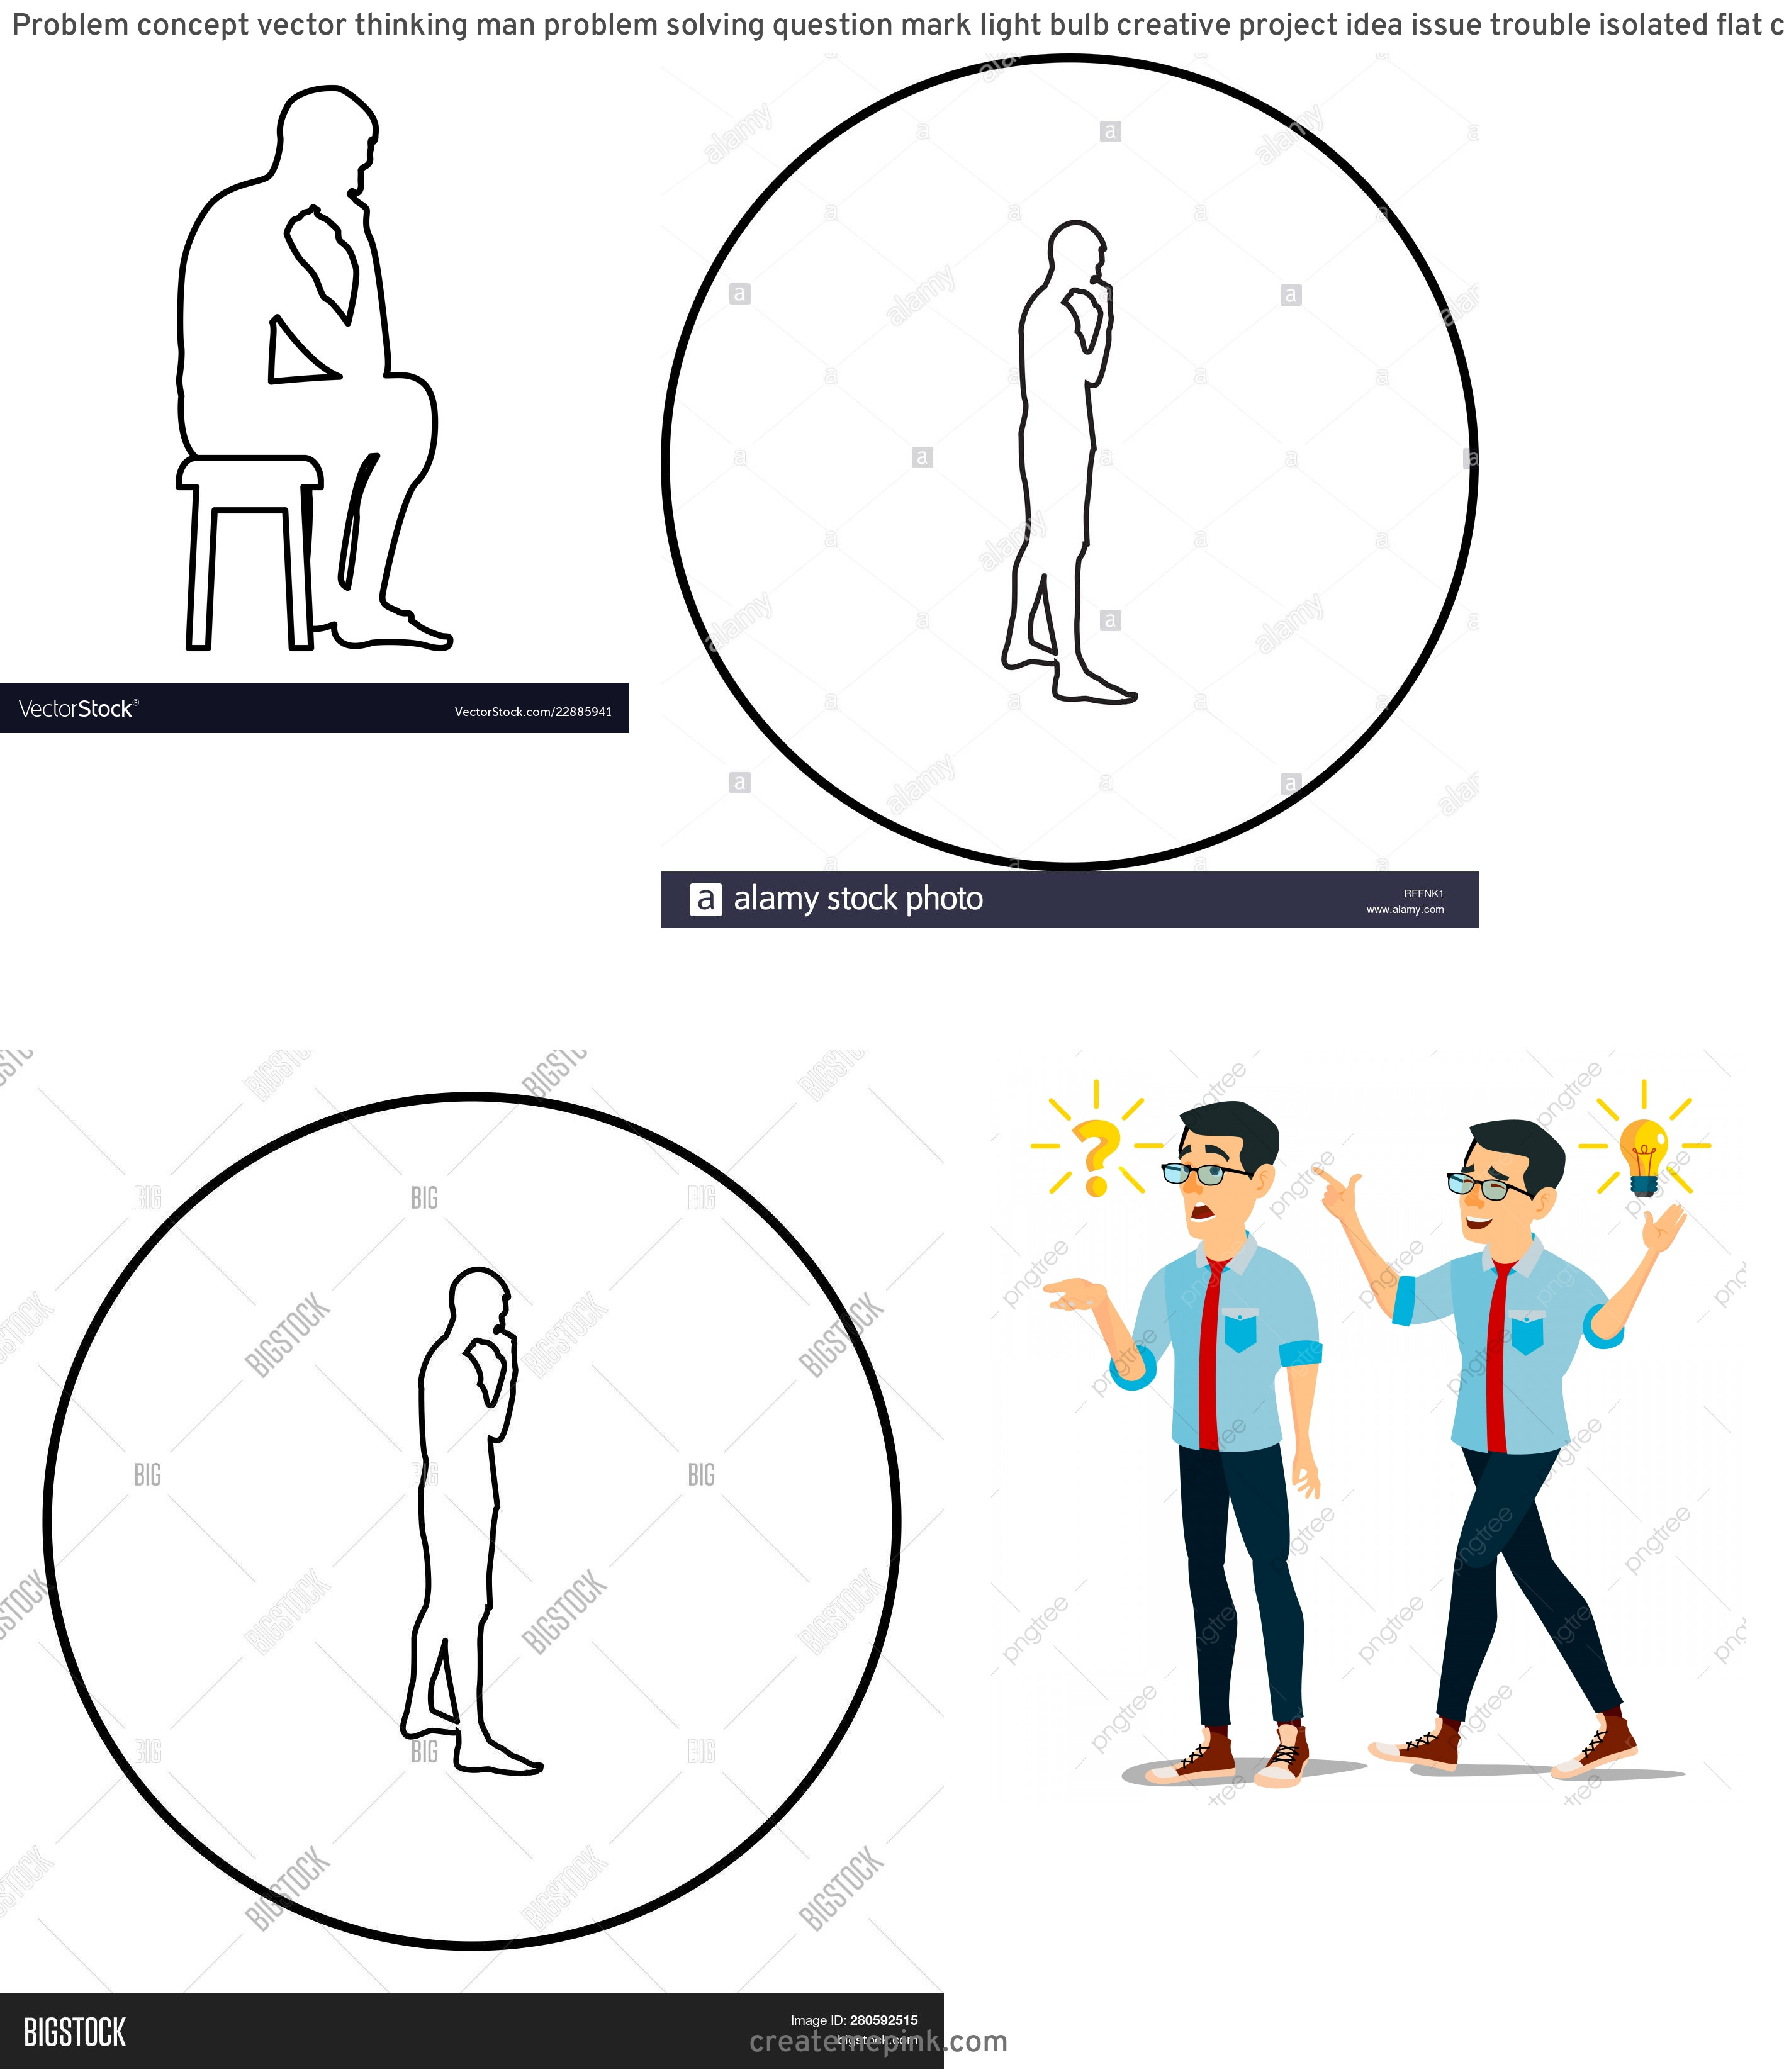 Person Thinking Outline Vector: Problem Concept Vector Thinking Man Problem Solving Question Mark Light Bulb Creative Project Idea Issue Trouble Isolated Flat Cartoon Illustration